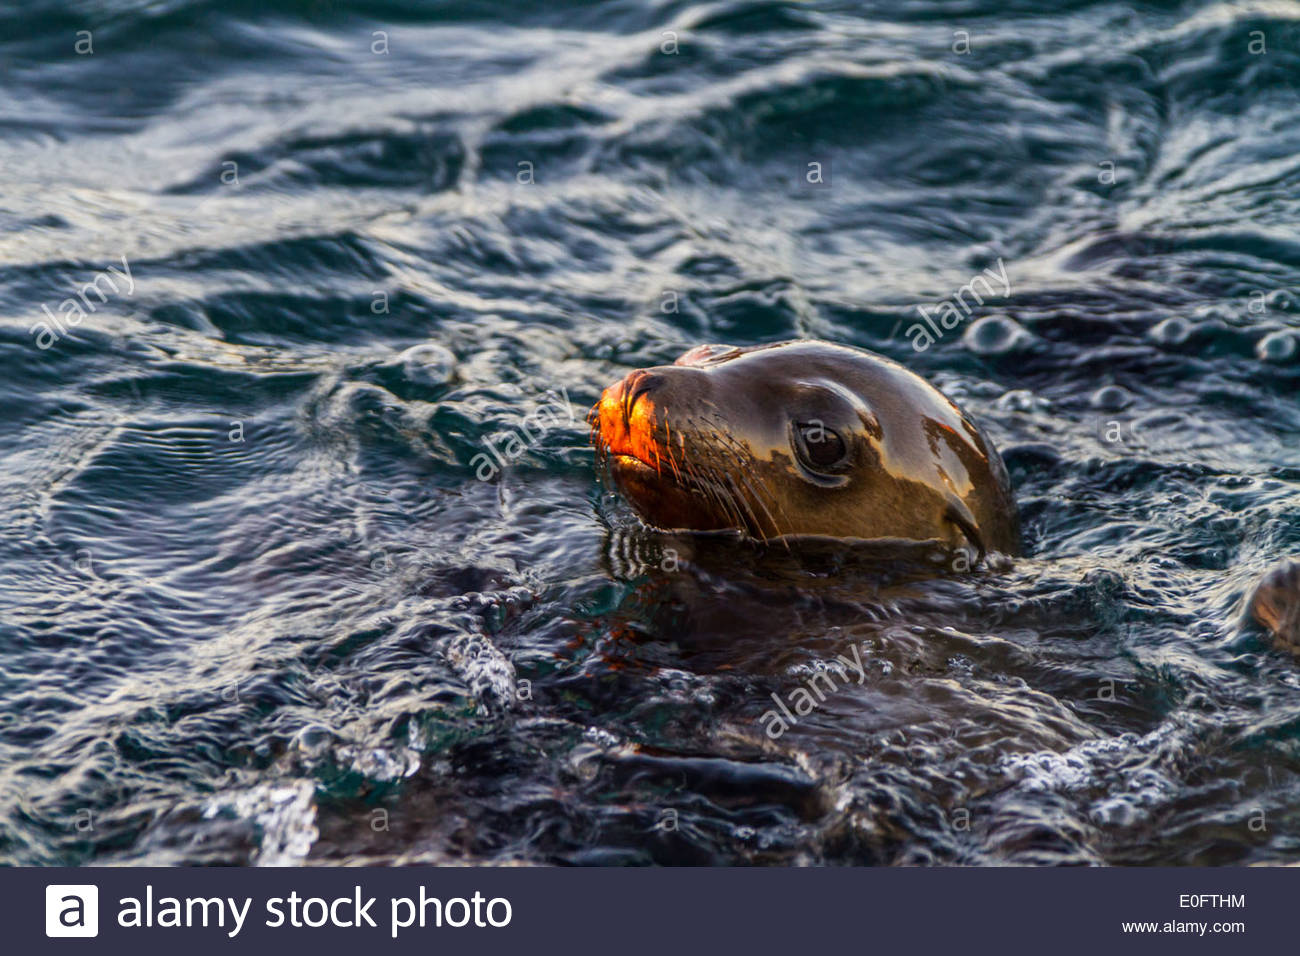 A California Sea Lion pokes its head above the waters of the Gulf of California in Mexico - Stock Image